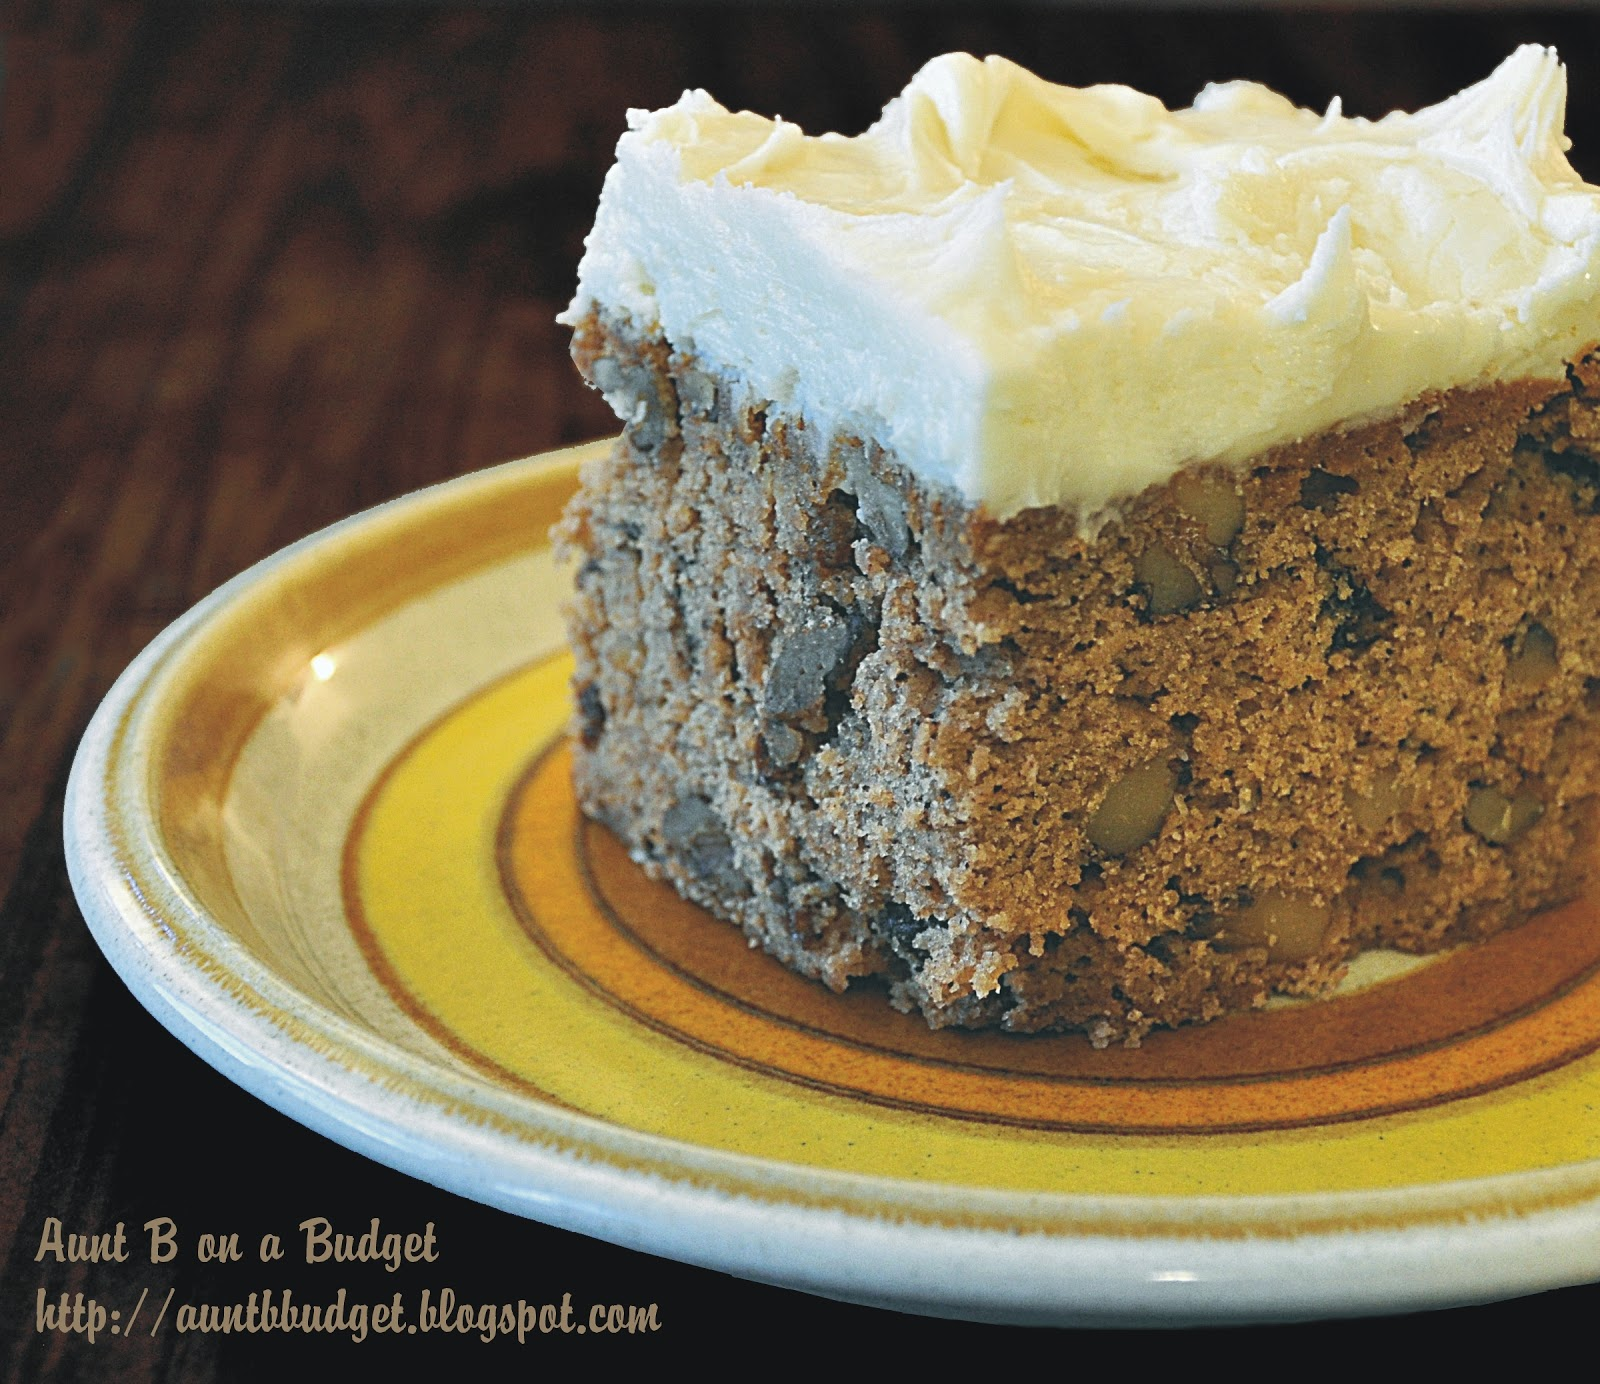 Aunt B on a Budget: Applesauce Spice Cake With Cream Cheese Frosting